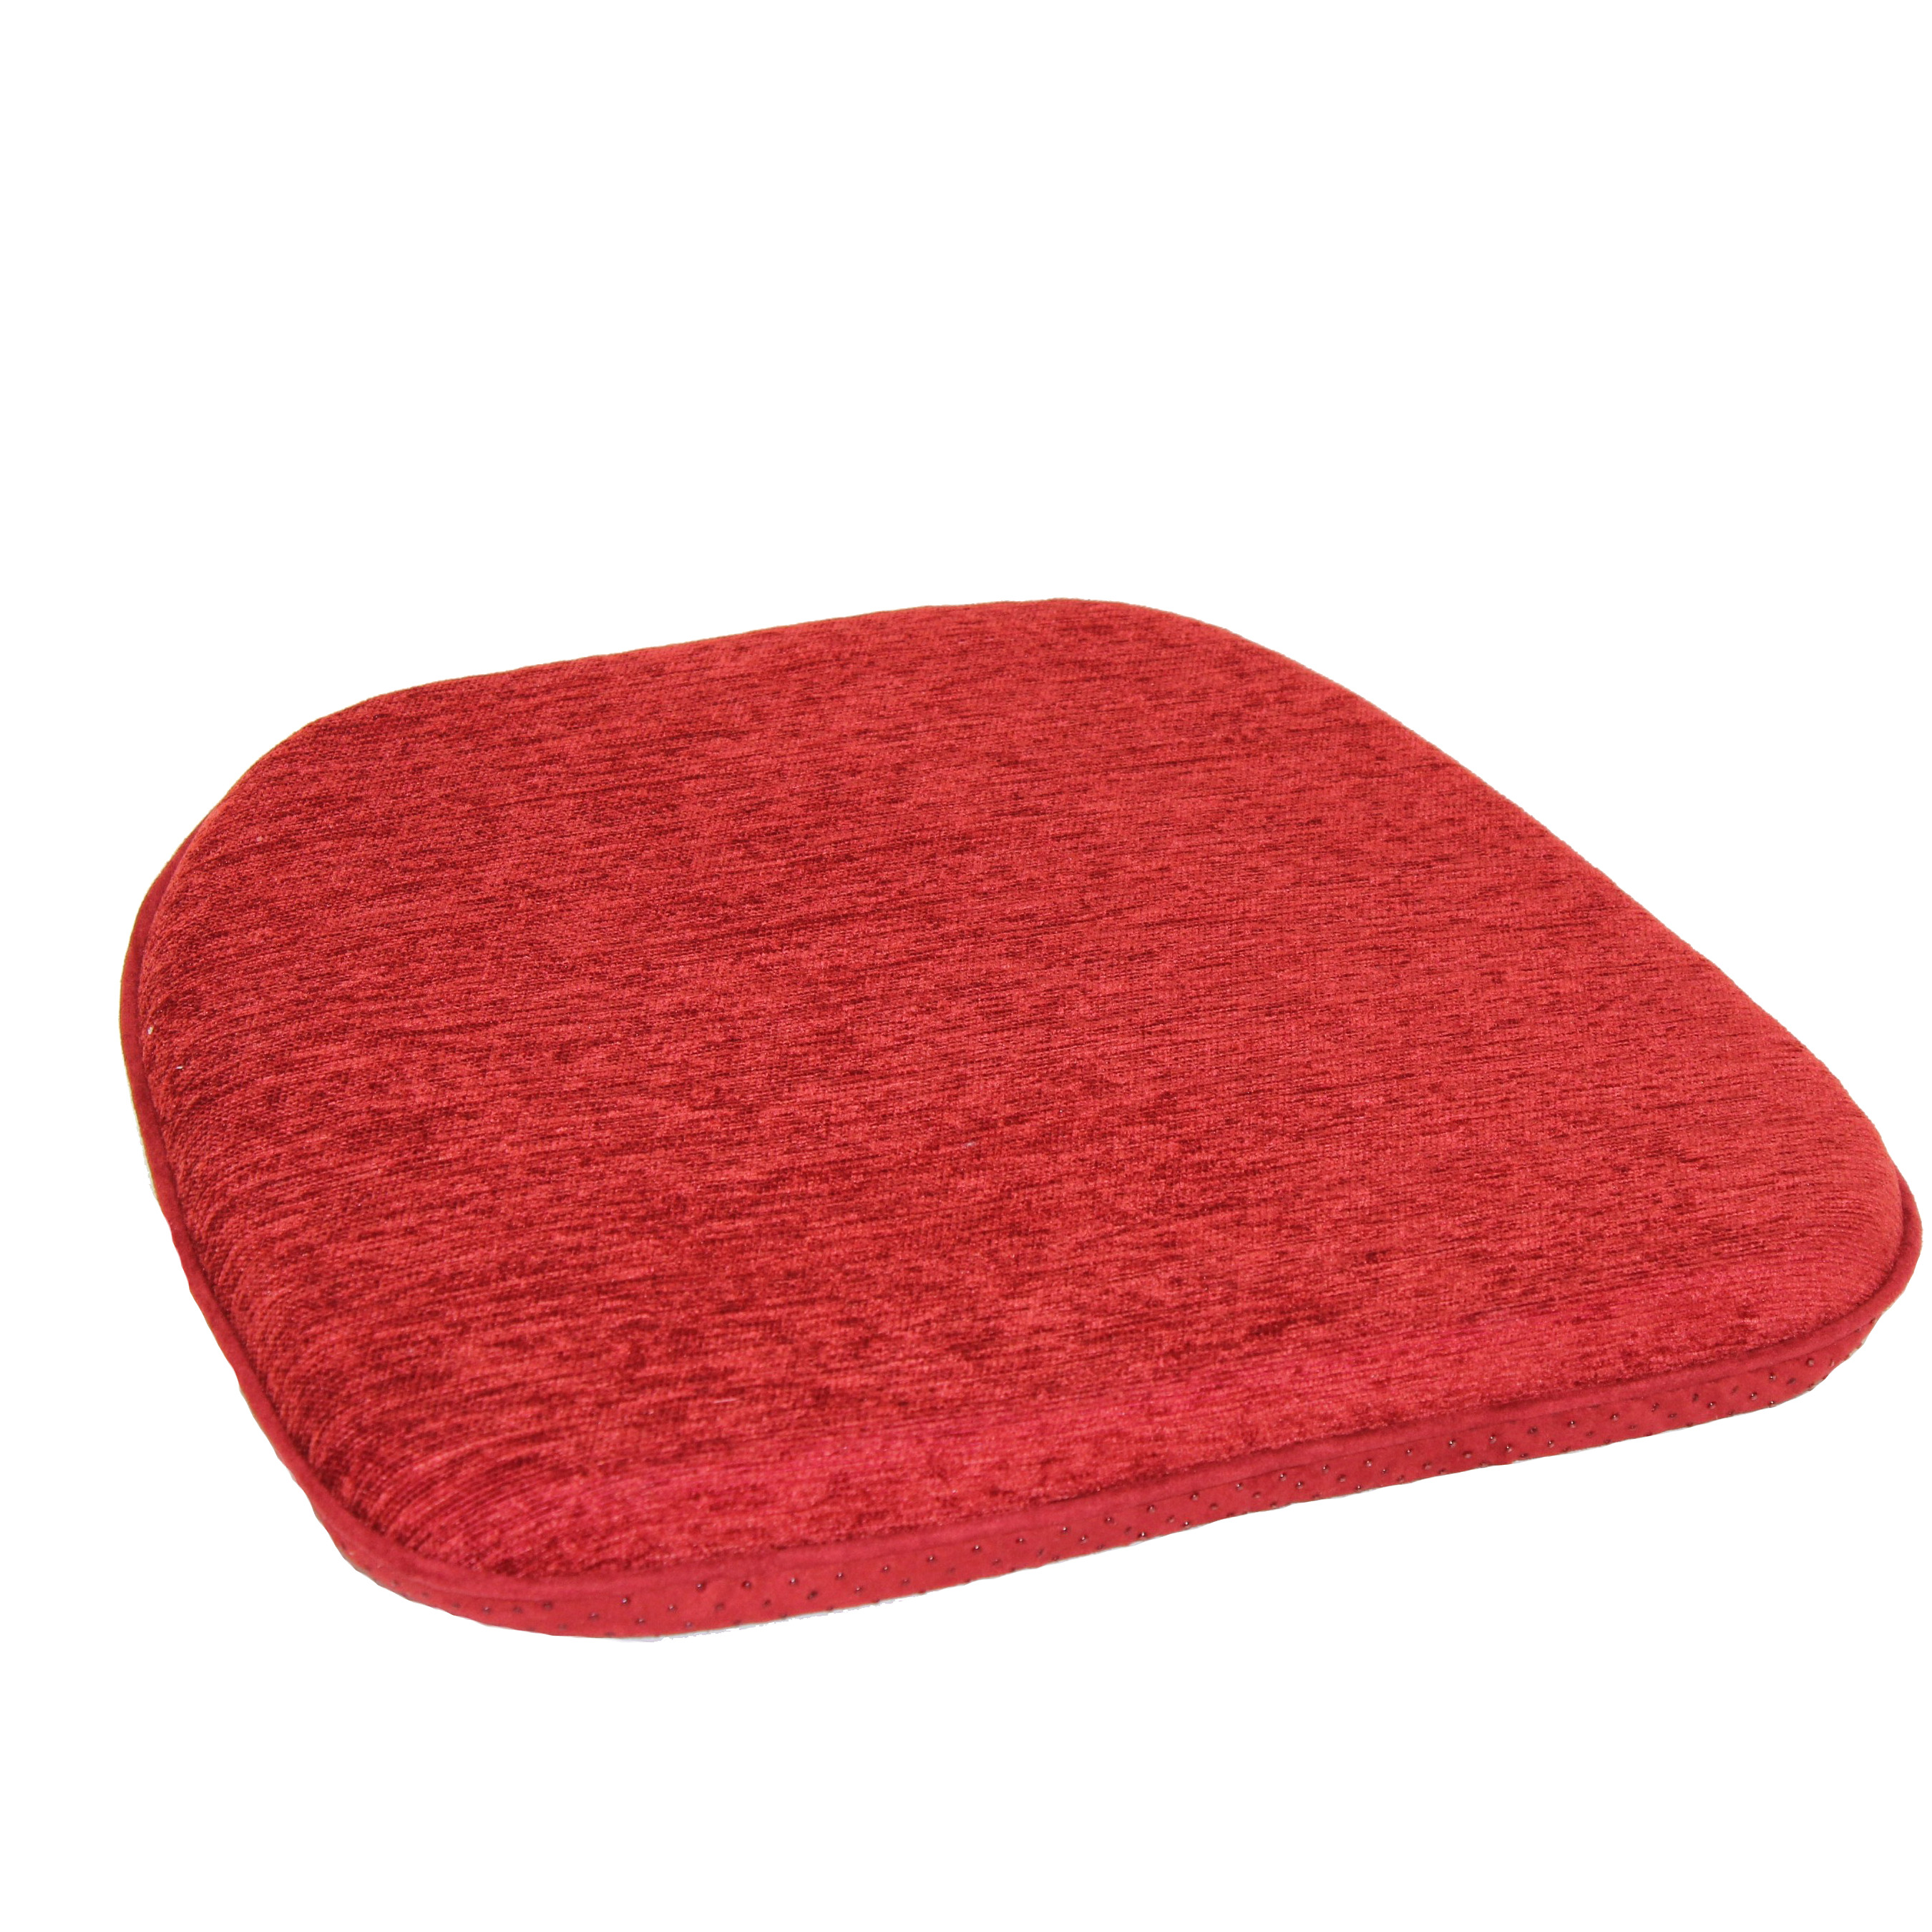 chair pad foam aluminum beach